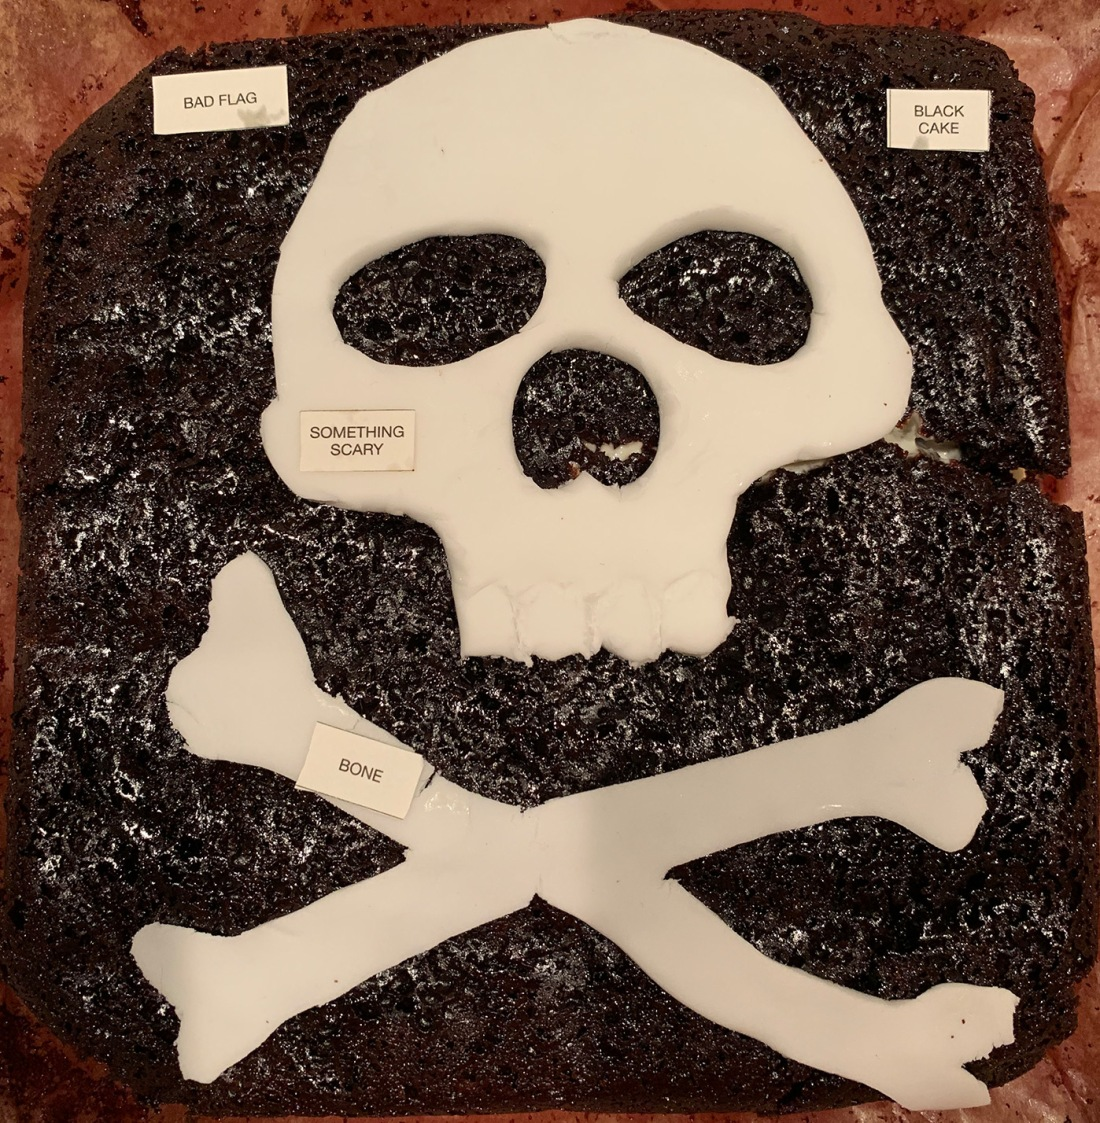 Bad Flag Something Scary Black Cake Bone Cropped (1)